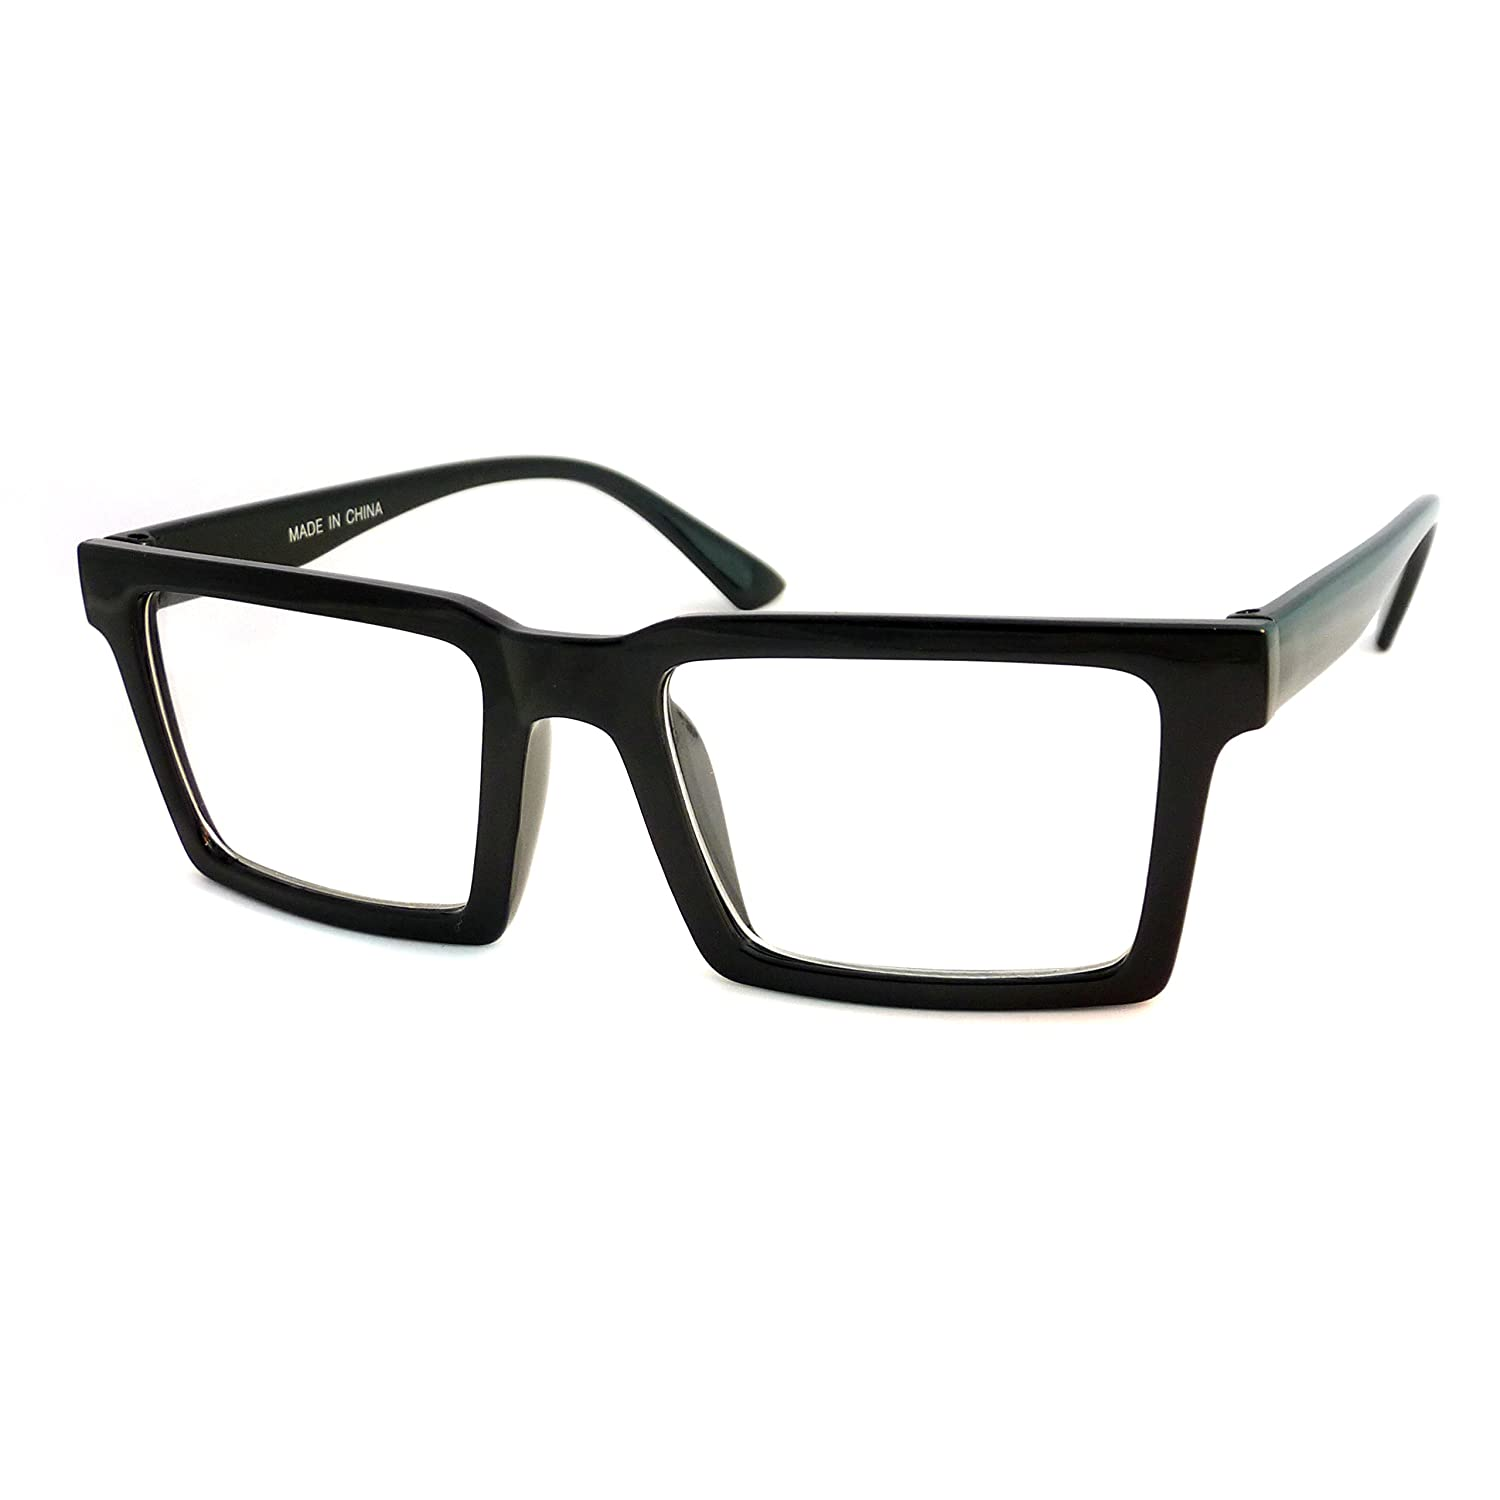 RETRO Trendy Geometric Square Frame Men Women Clear Lens Eye Glasses BLACK ... 4332485453